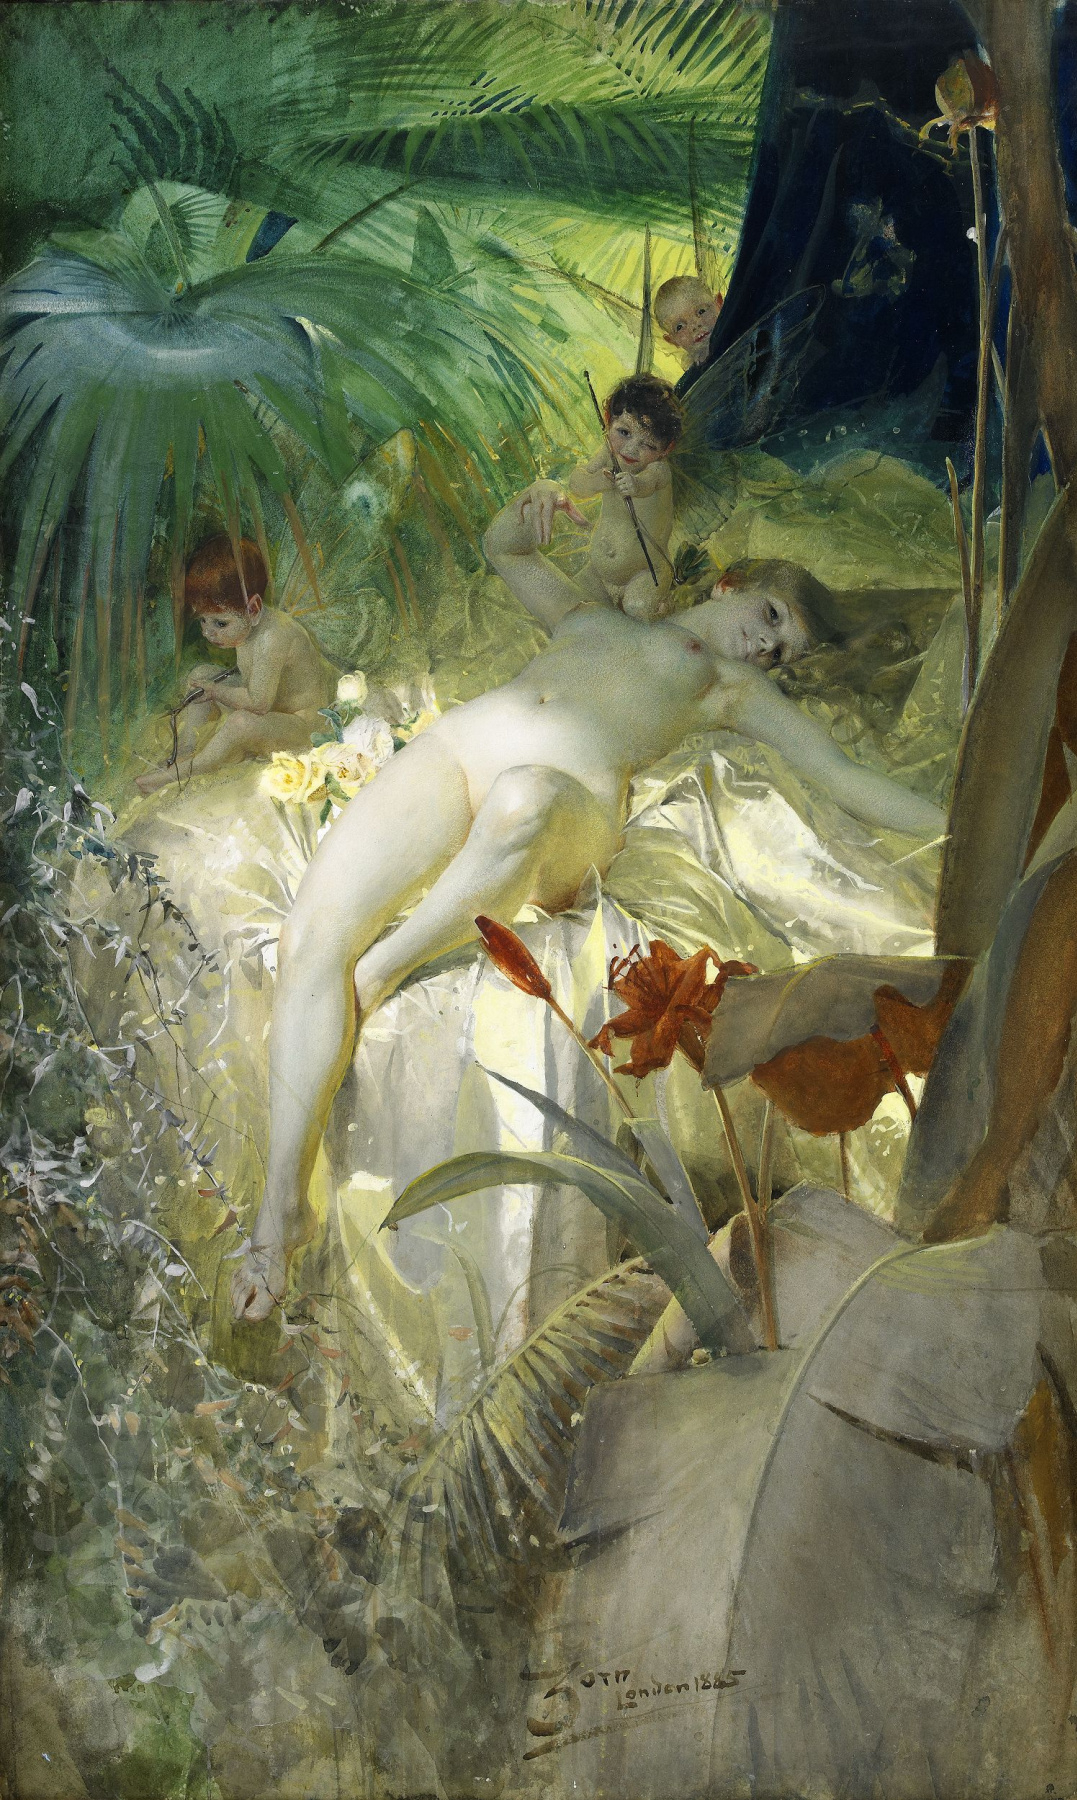 Anders Zorn. The nymph of love